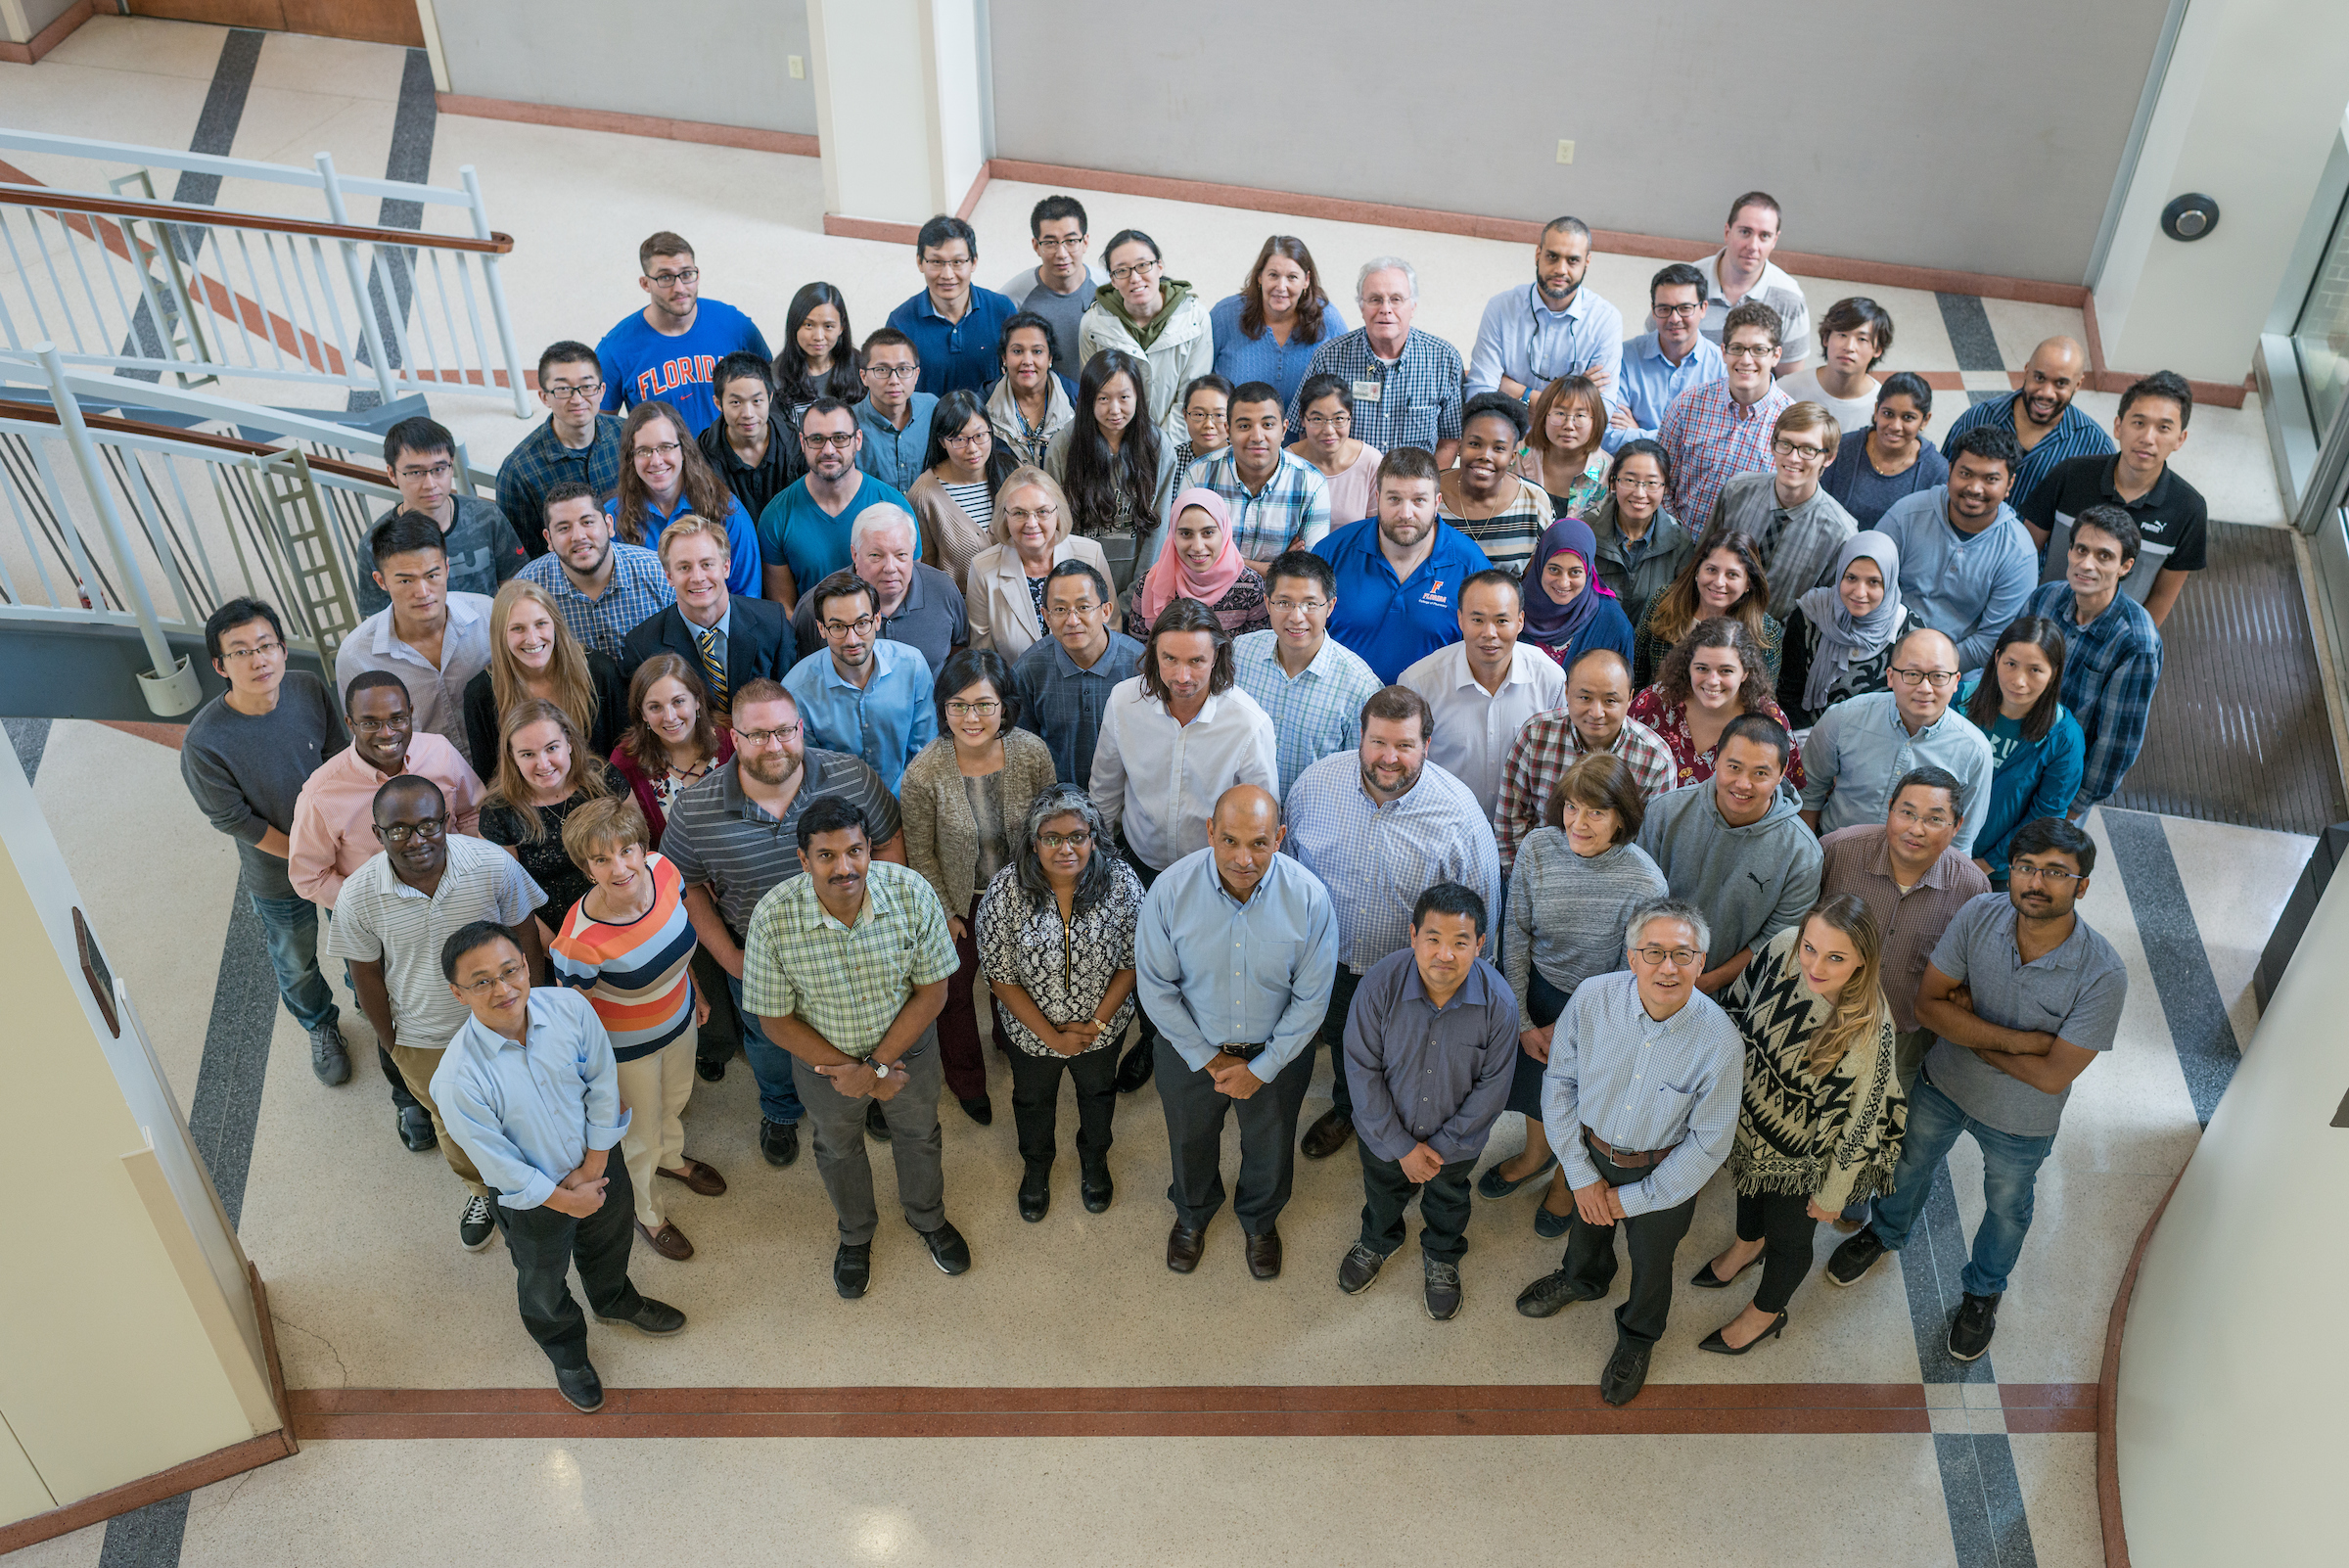 Group photo of all medicinal chemistry faculty and students